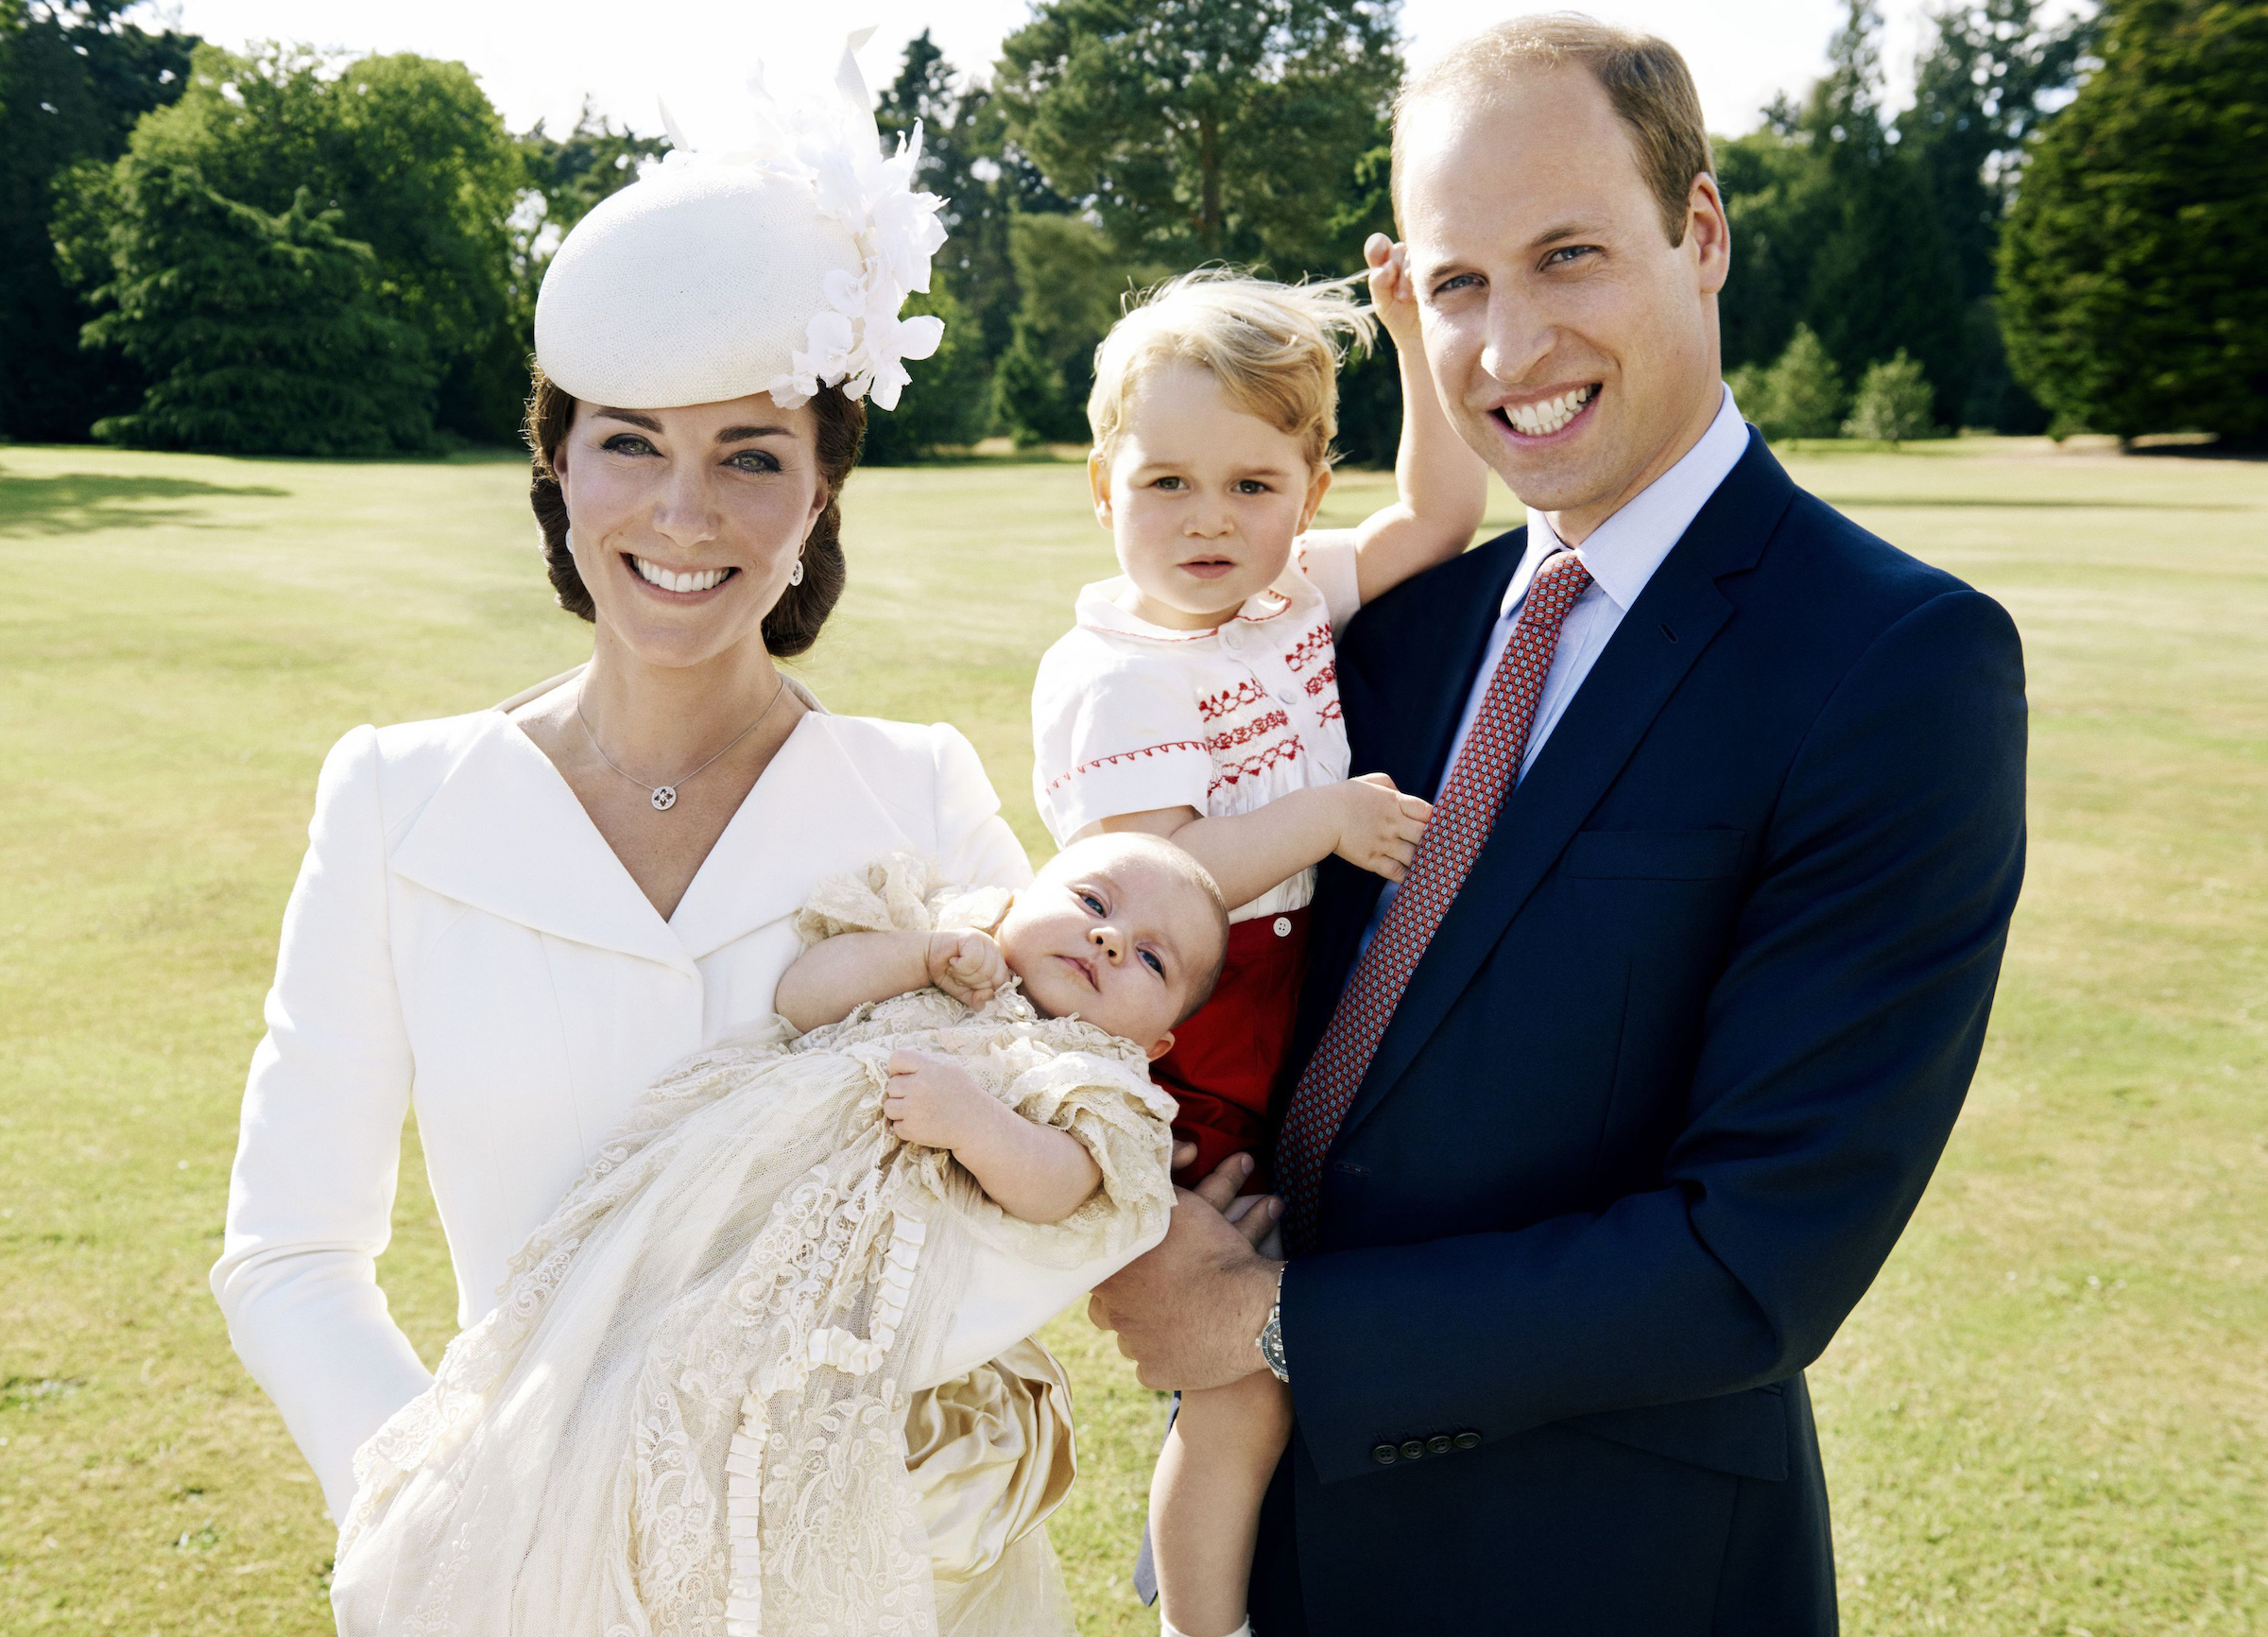 Royal christening 2 pa 23510537 mario testino art partner